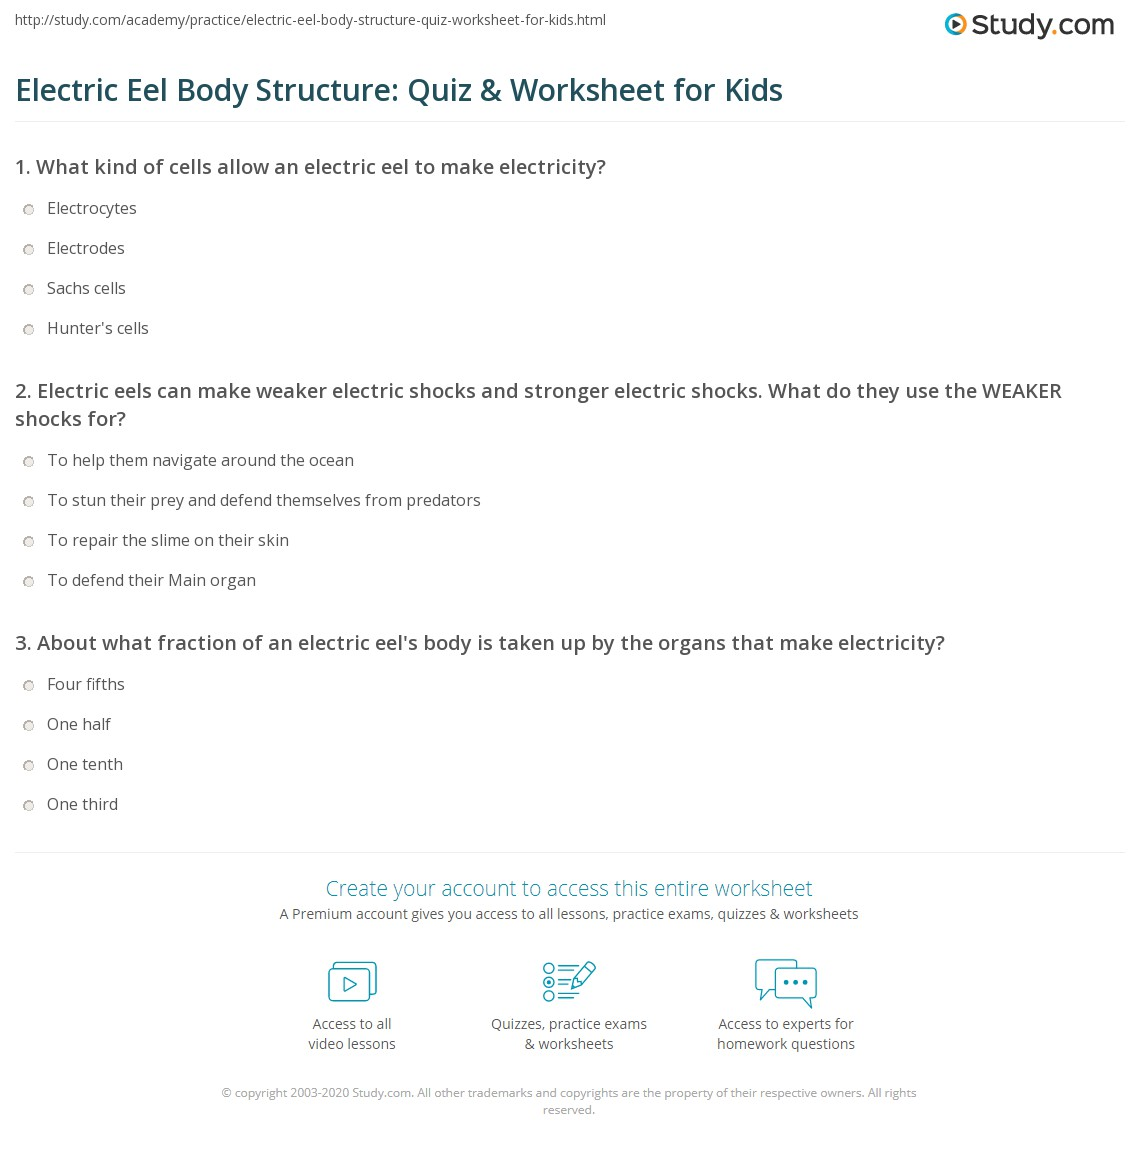 Electric Eel Body Structure: Quiz & Worksheet for Kids | Study.com